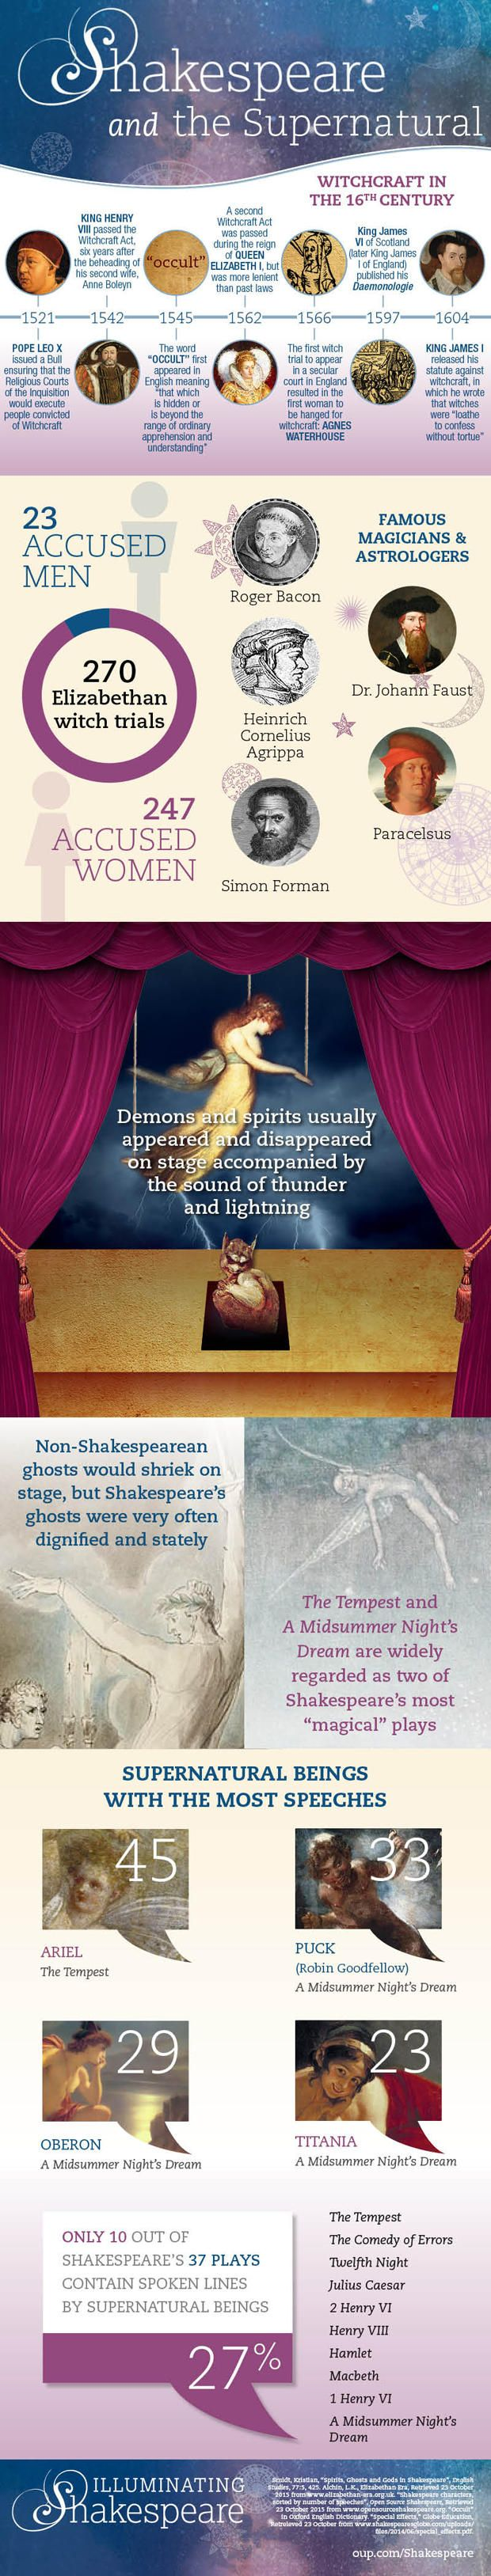 <PEM> Infographic Explores Shakespeare's Relationship With the Supernatural | Mental Floss